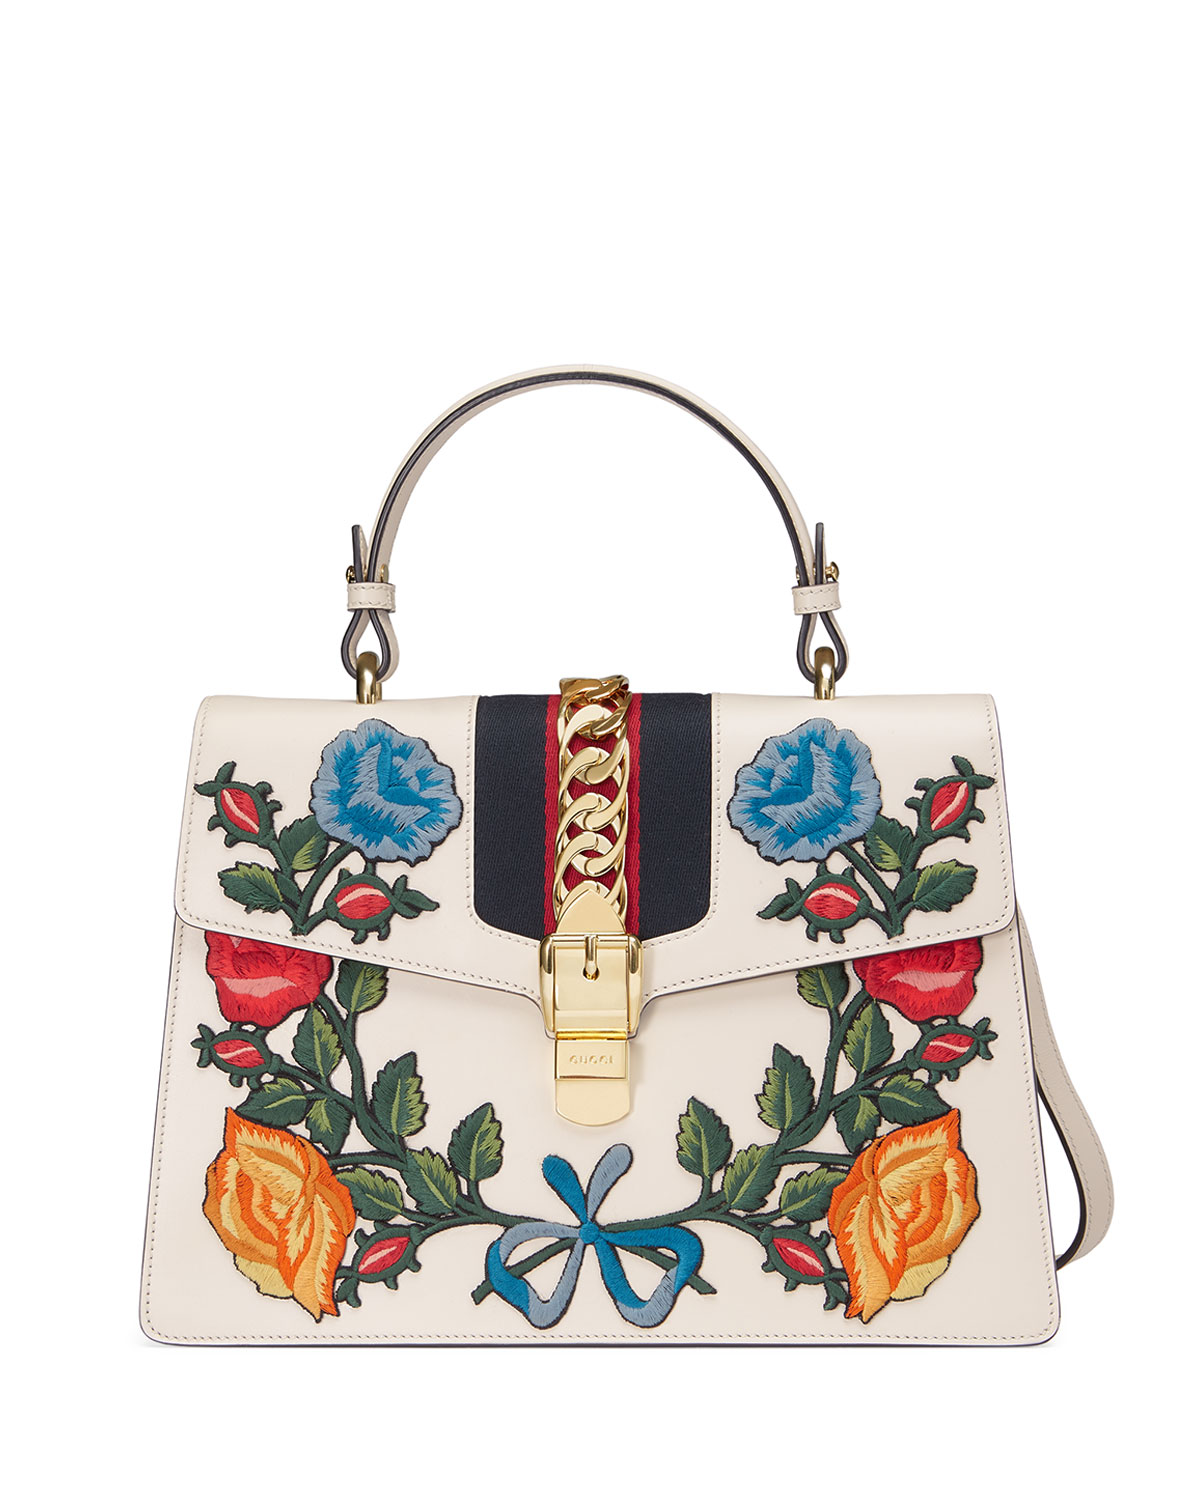 bd6b7567d4f Gucci Sylvie Embroidered Leather Top-Handle Satchel Bag